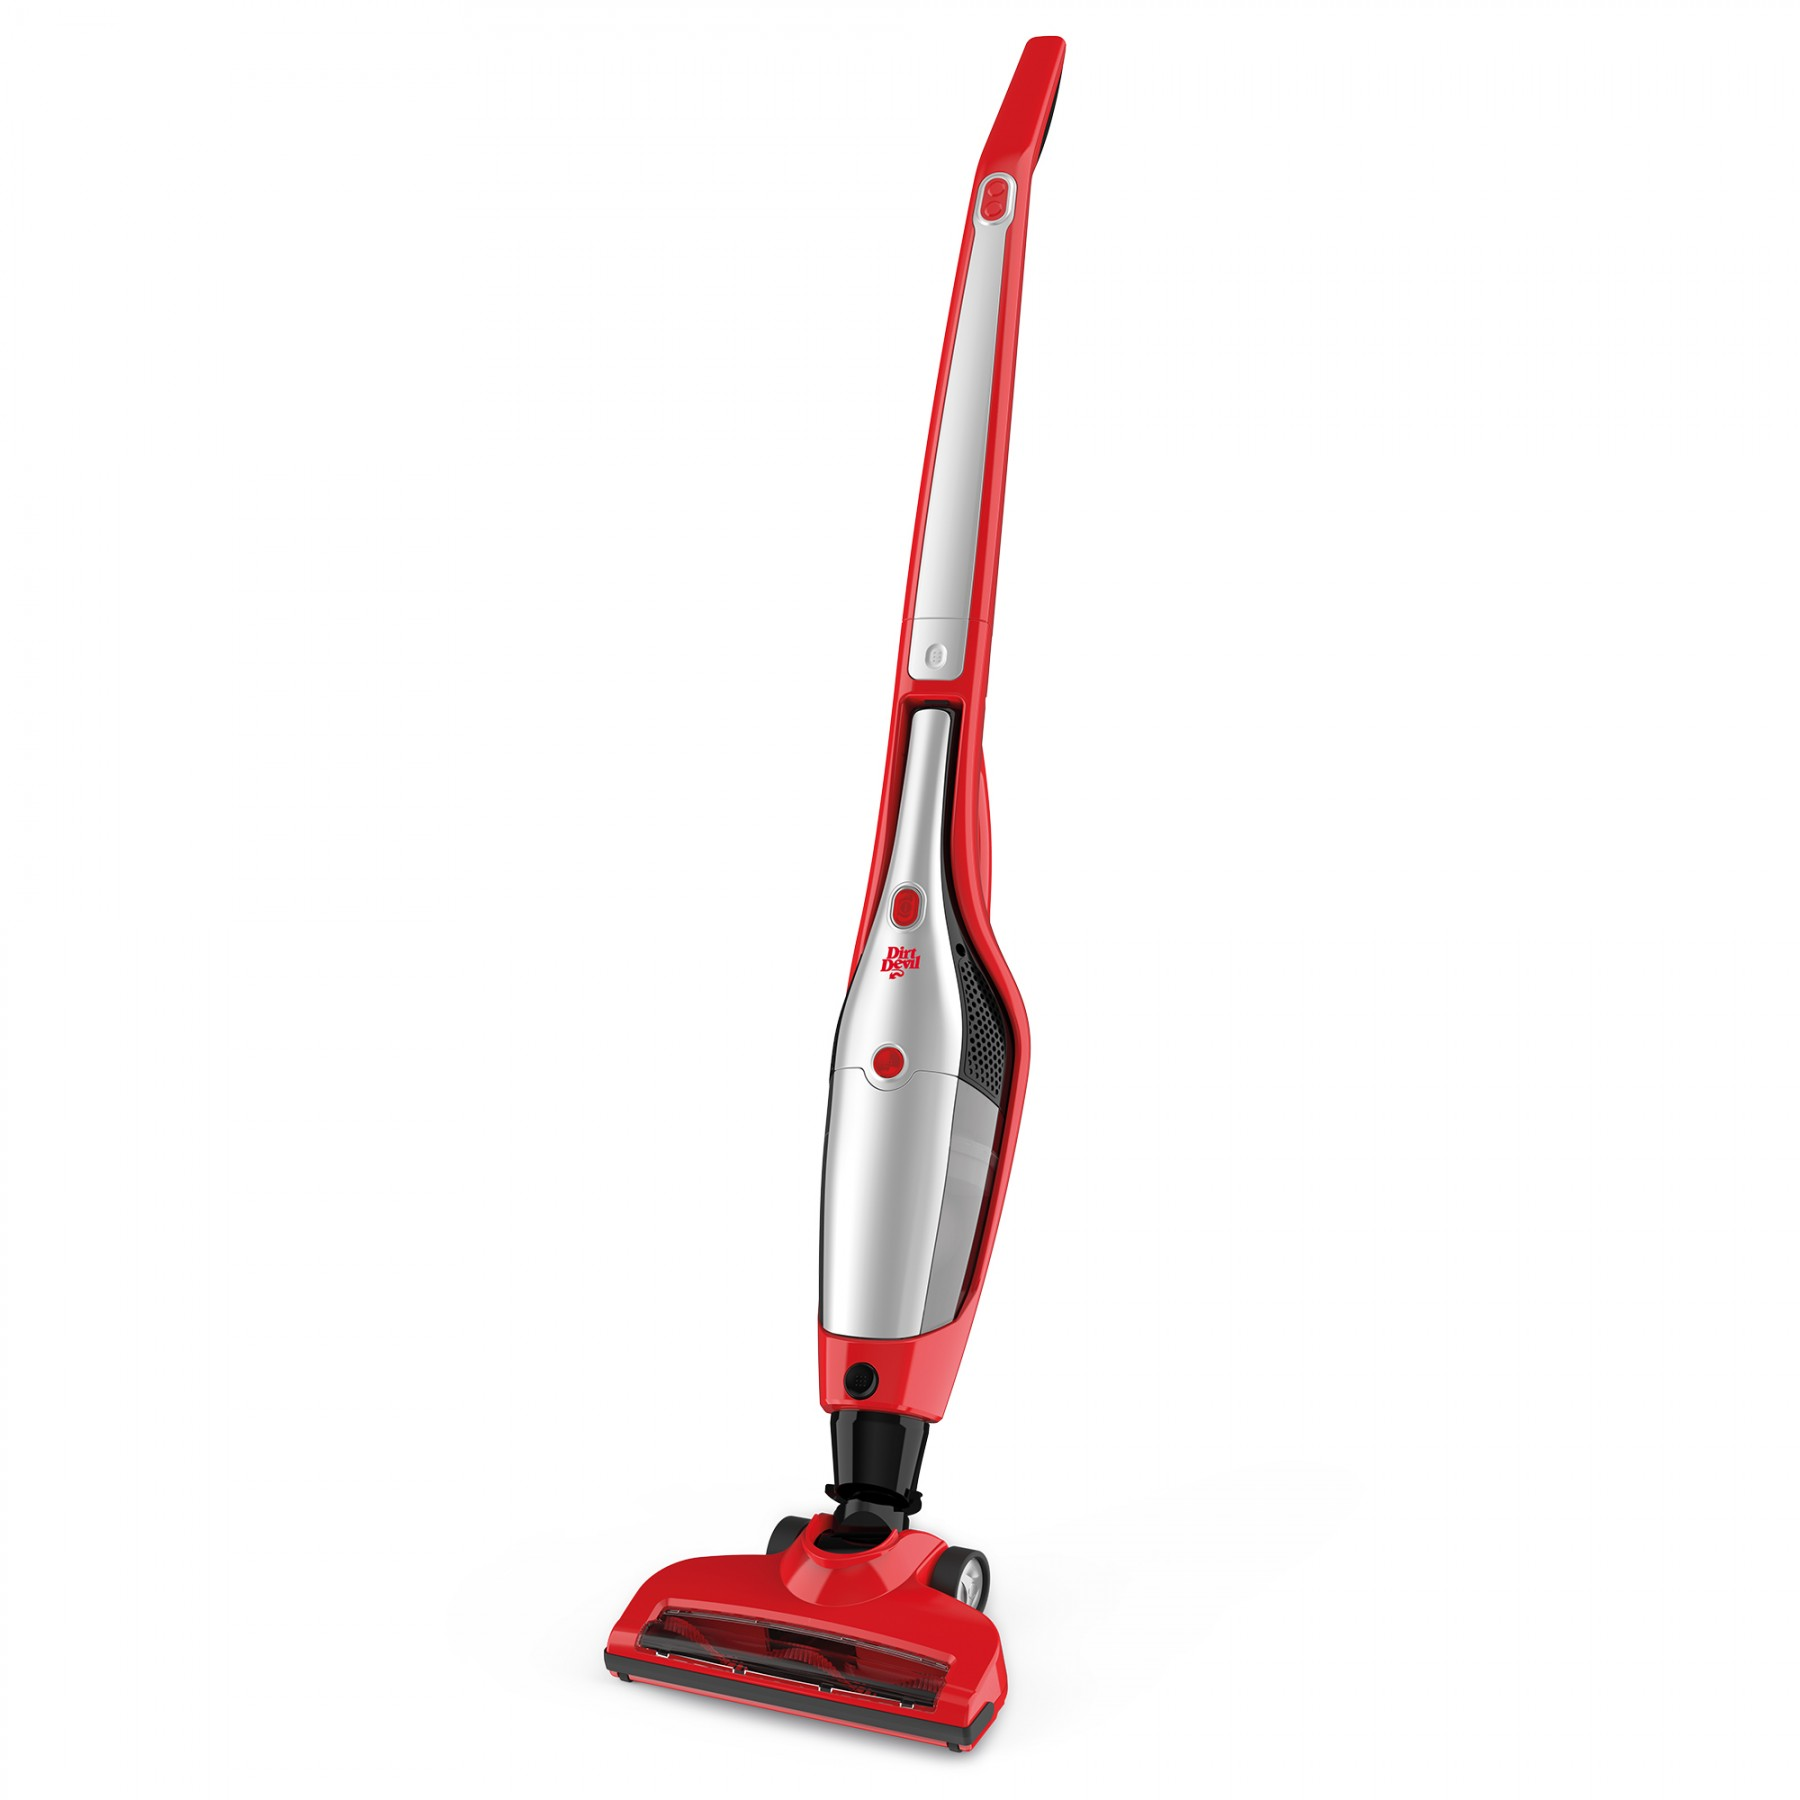 Carpet Vacuum Cleaner Images Portable Steam Reviews